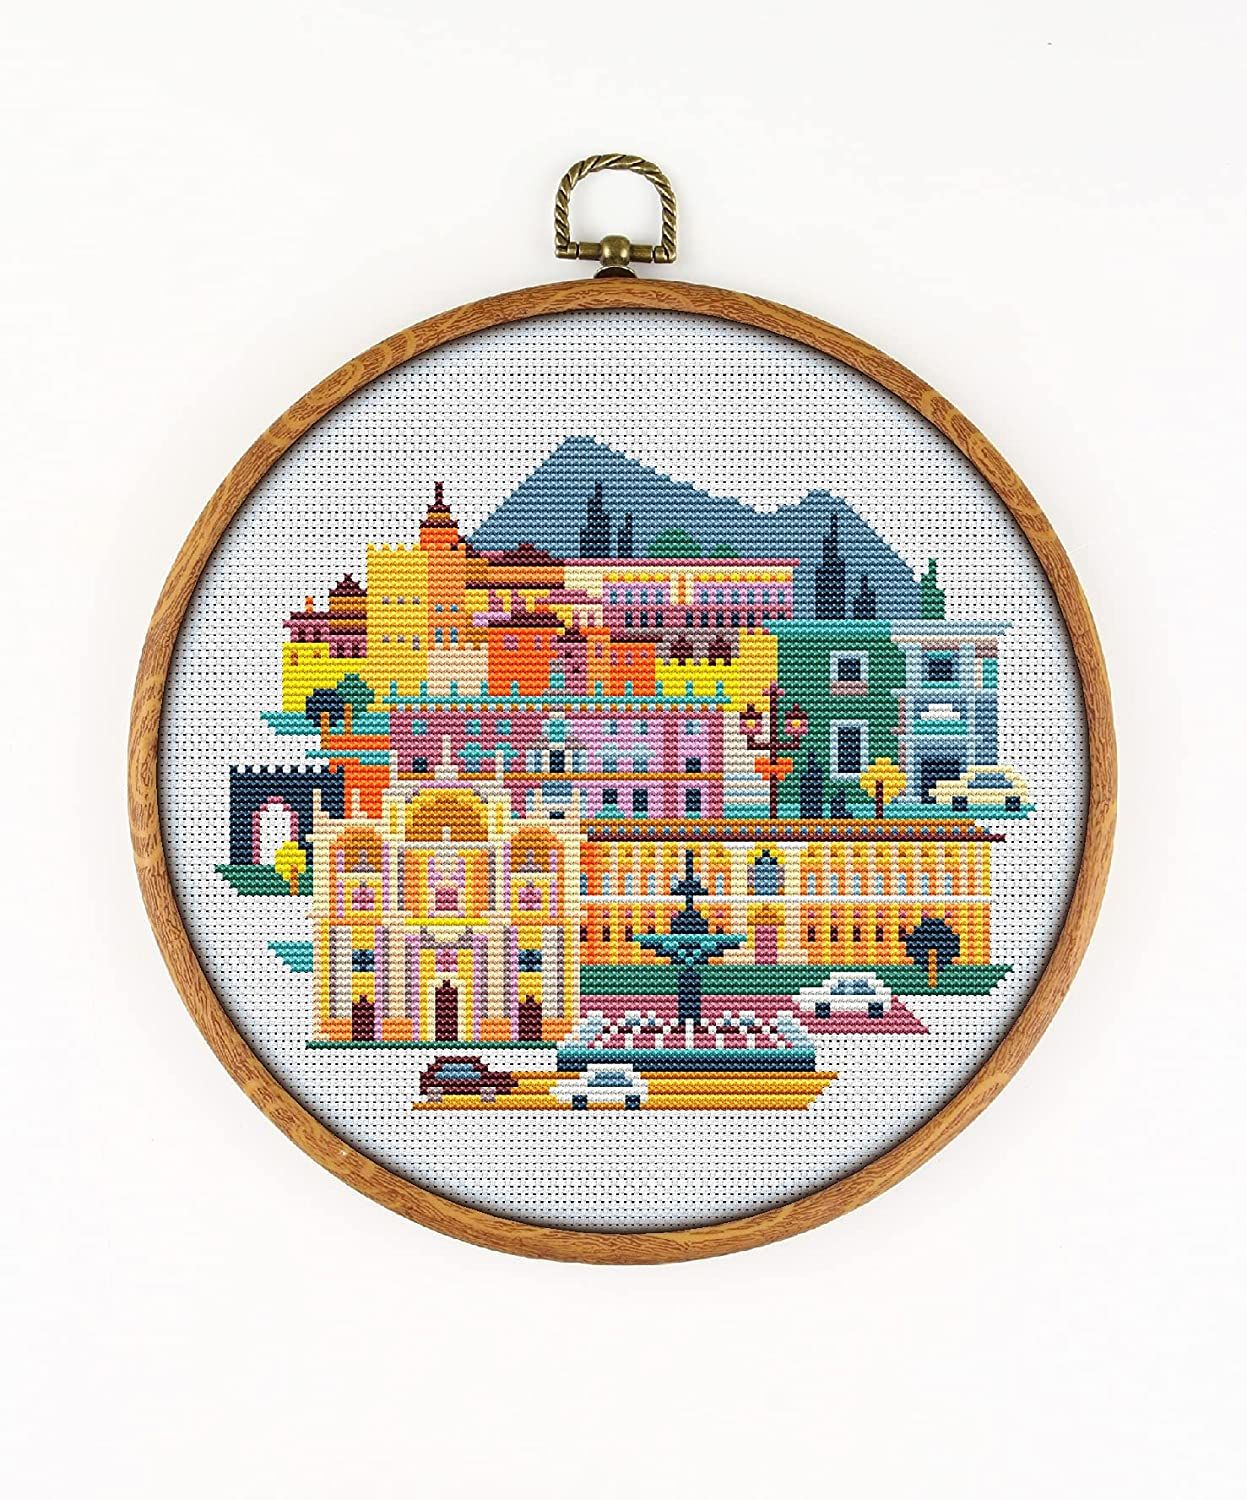 Granada K1187 Max 77% OFF Counted Cross Stitch Sale Special Price KIT#3. Fabr Threads Needles